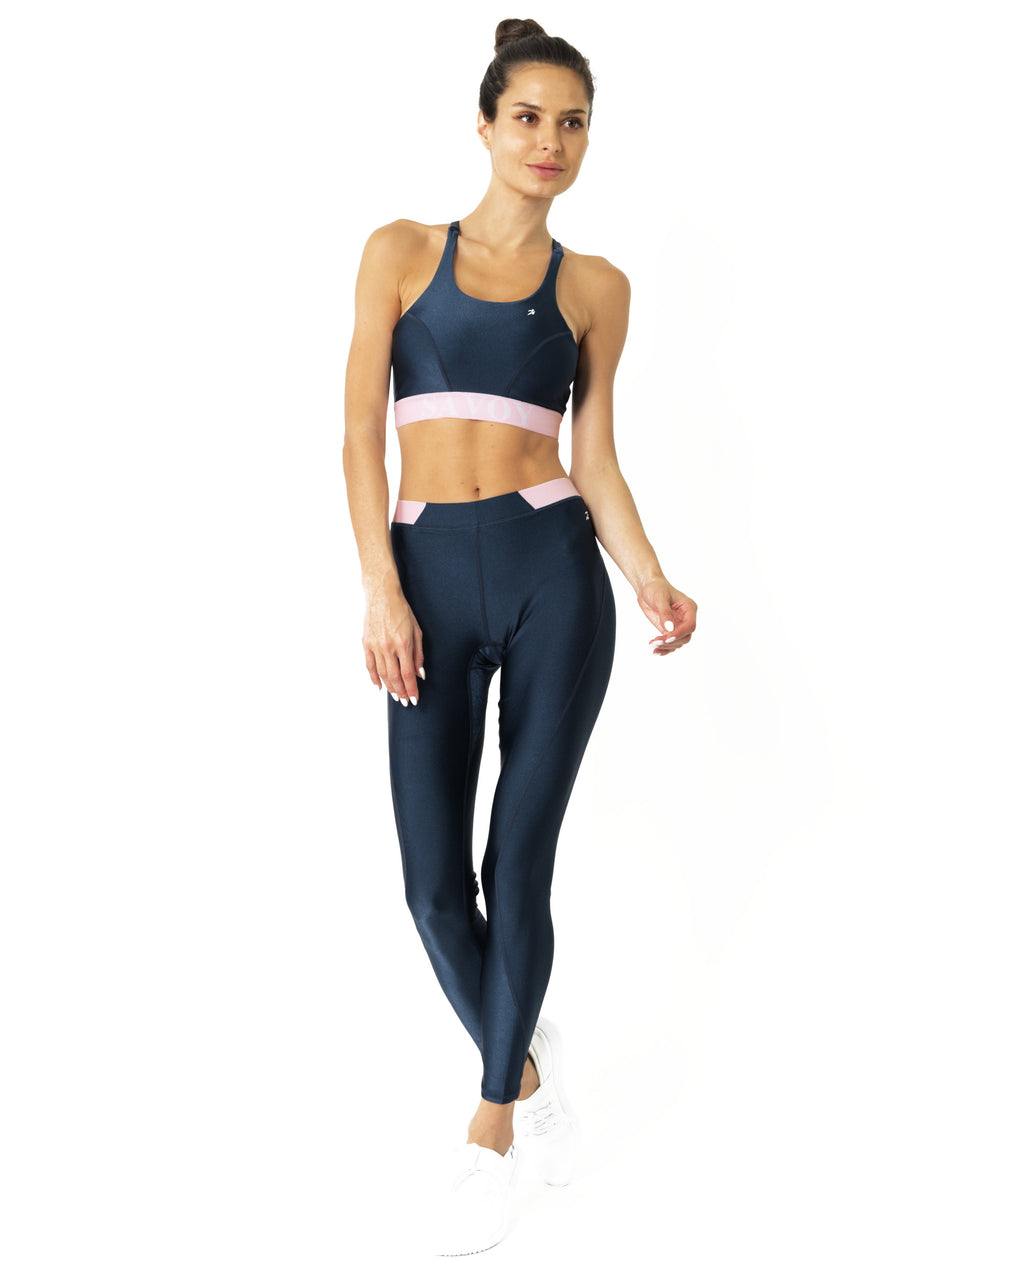 Hudson Two Piece Workout Set - Sports Crop Bra and